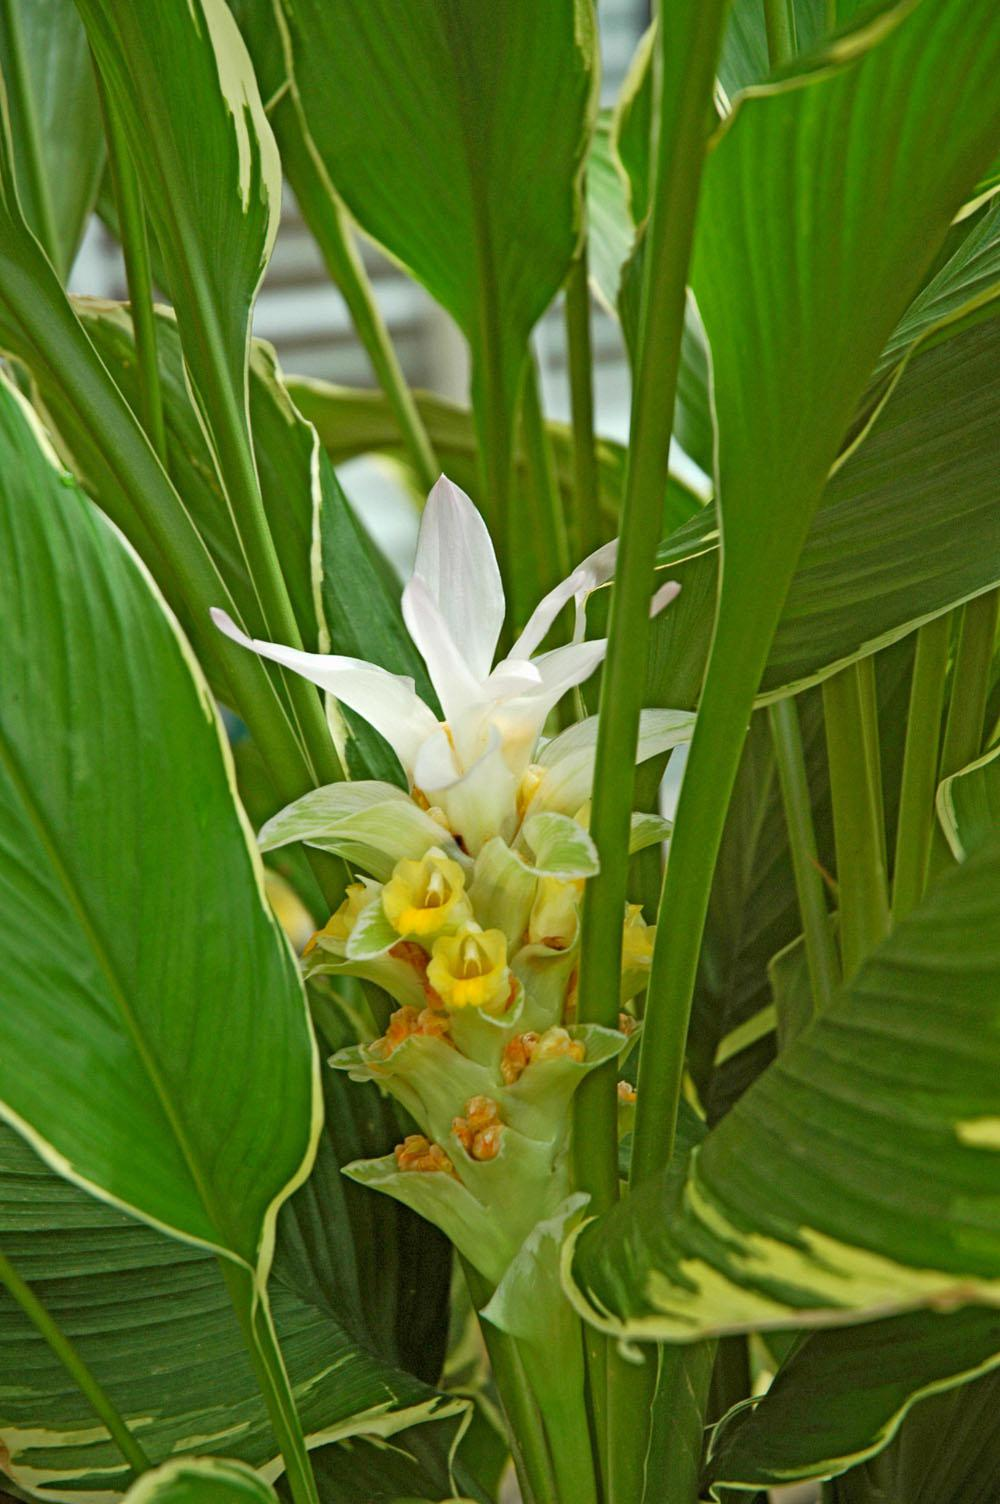 This ginger, known as Emperor, will royally impress viewers with its creamy yellow variegation on the margins of dark green leaves. The blooms, or bracts, look like porcelain. The petals gradually drop on the older portion of the bloom until yellow cups remain.